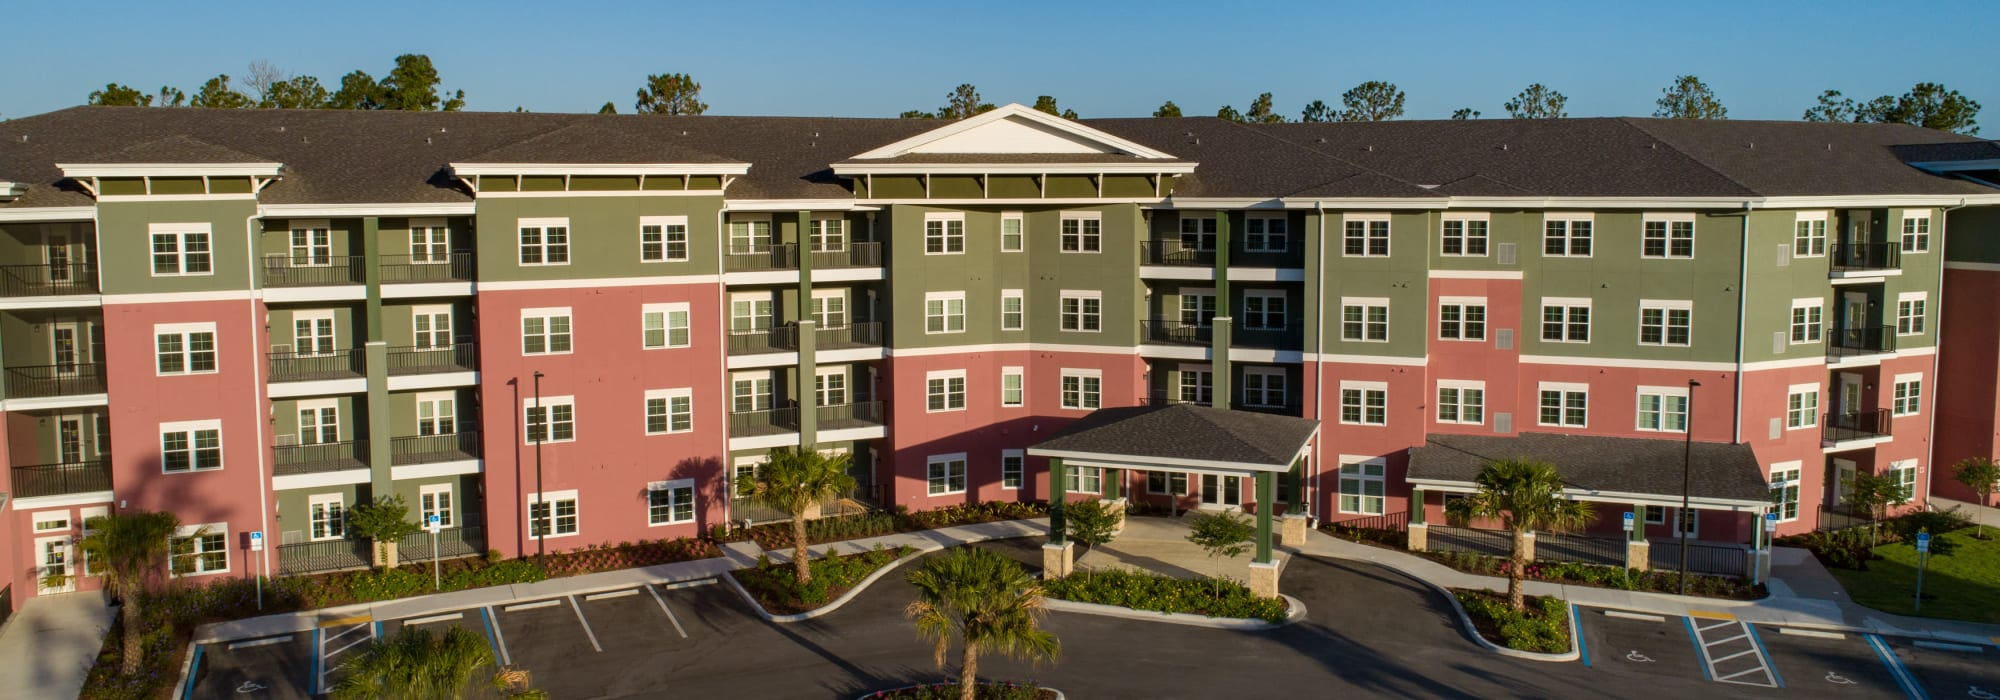 Exterior of main building at Keystone Place at Terra Bella in Land O' Lakes, Florida.